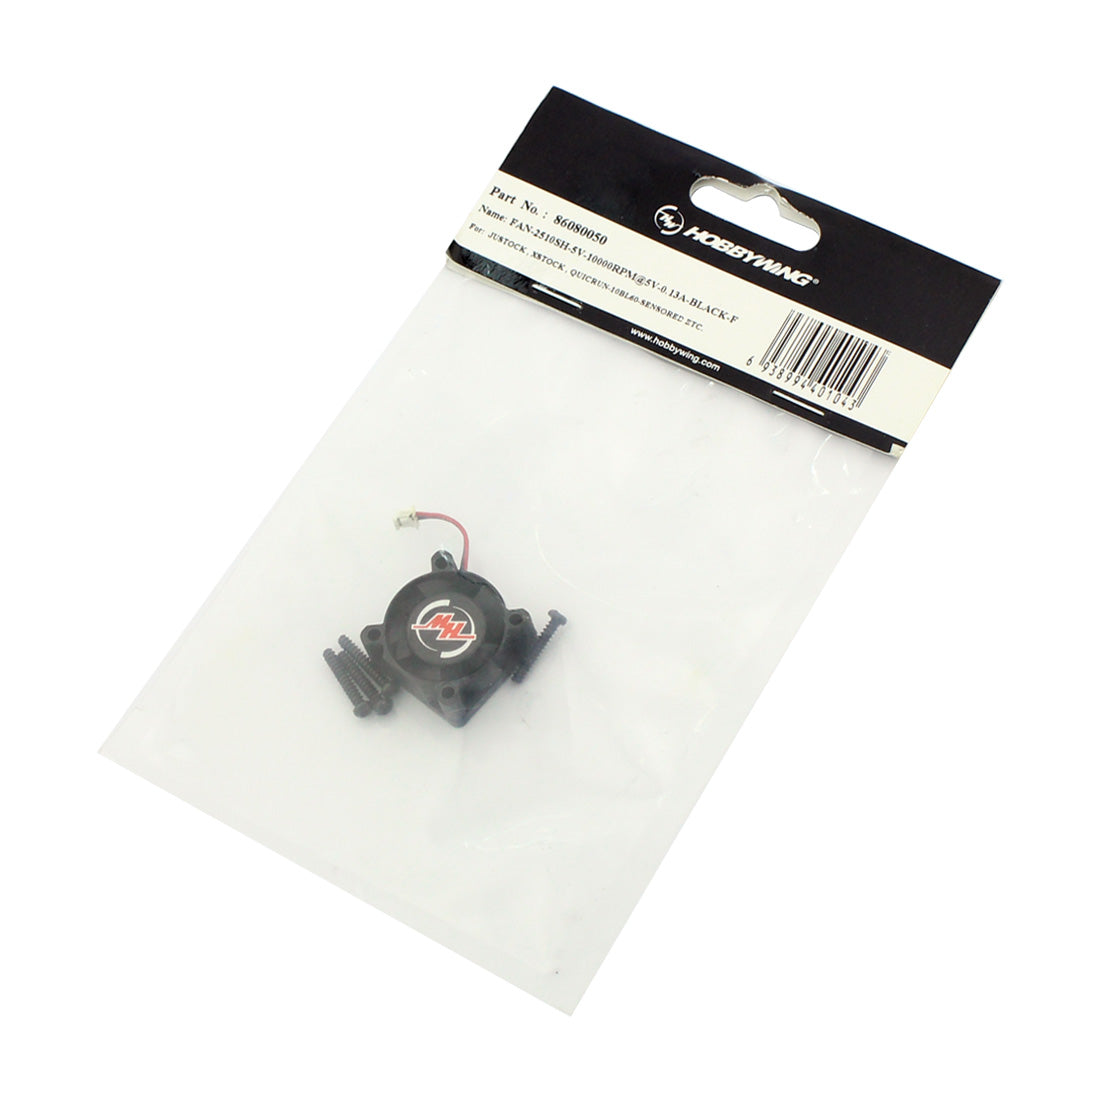 Hobbywing 2510SH 5V ESC Cooling Fan 2510SH-5V 25*25*10mm for EZRUN 60A / QUICRUN 10BL60 SENSORED Speed Controller